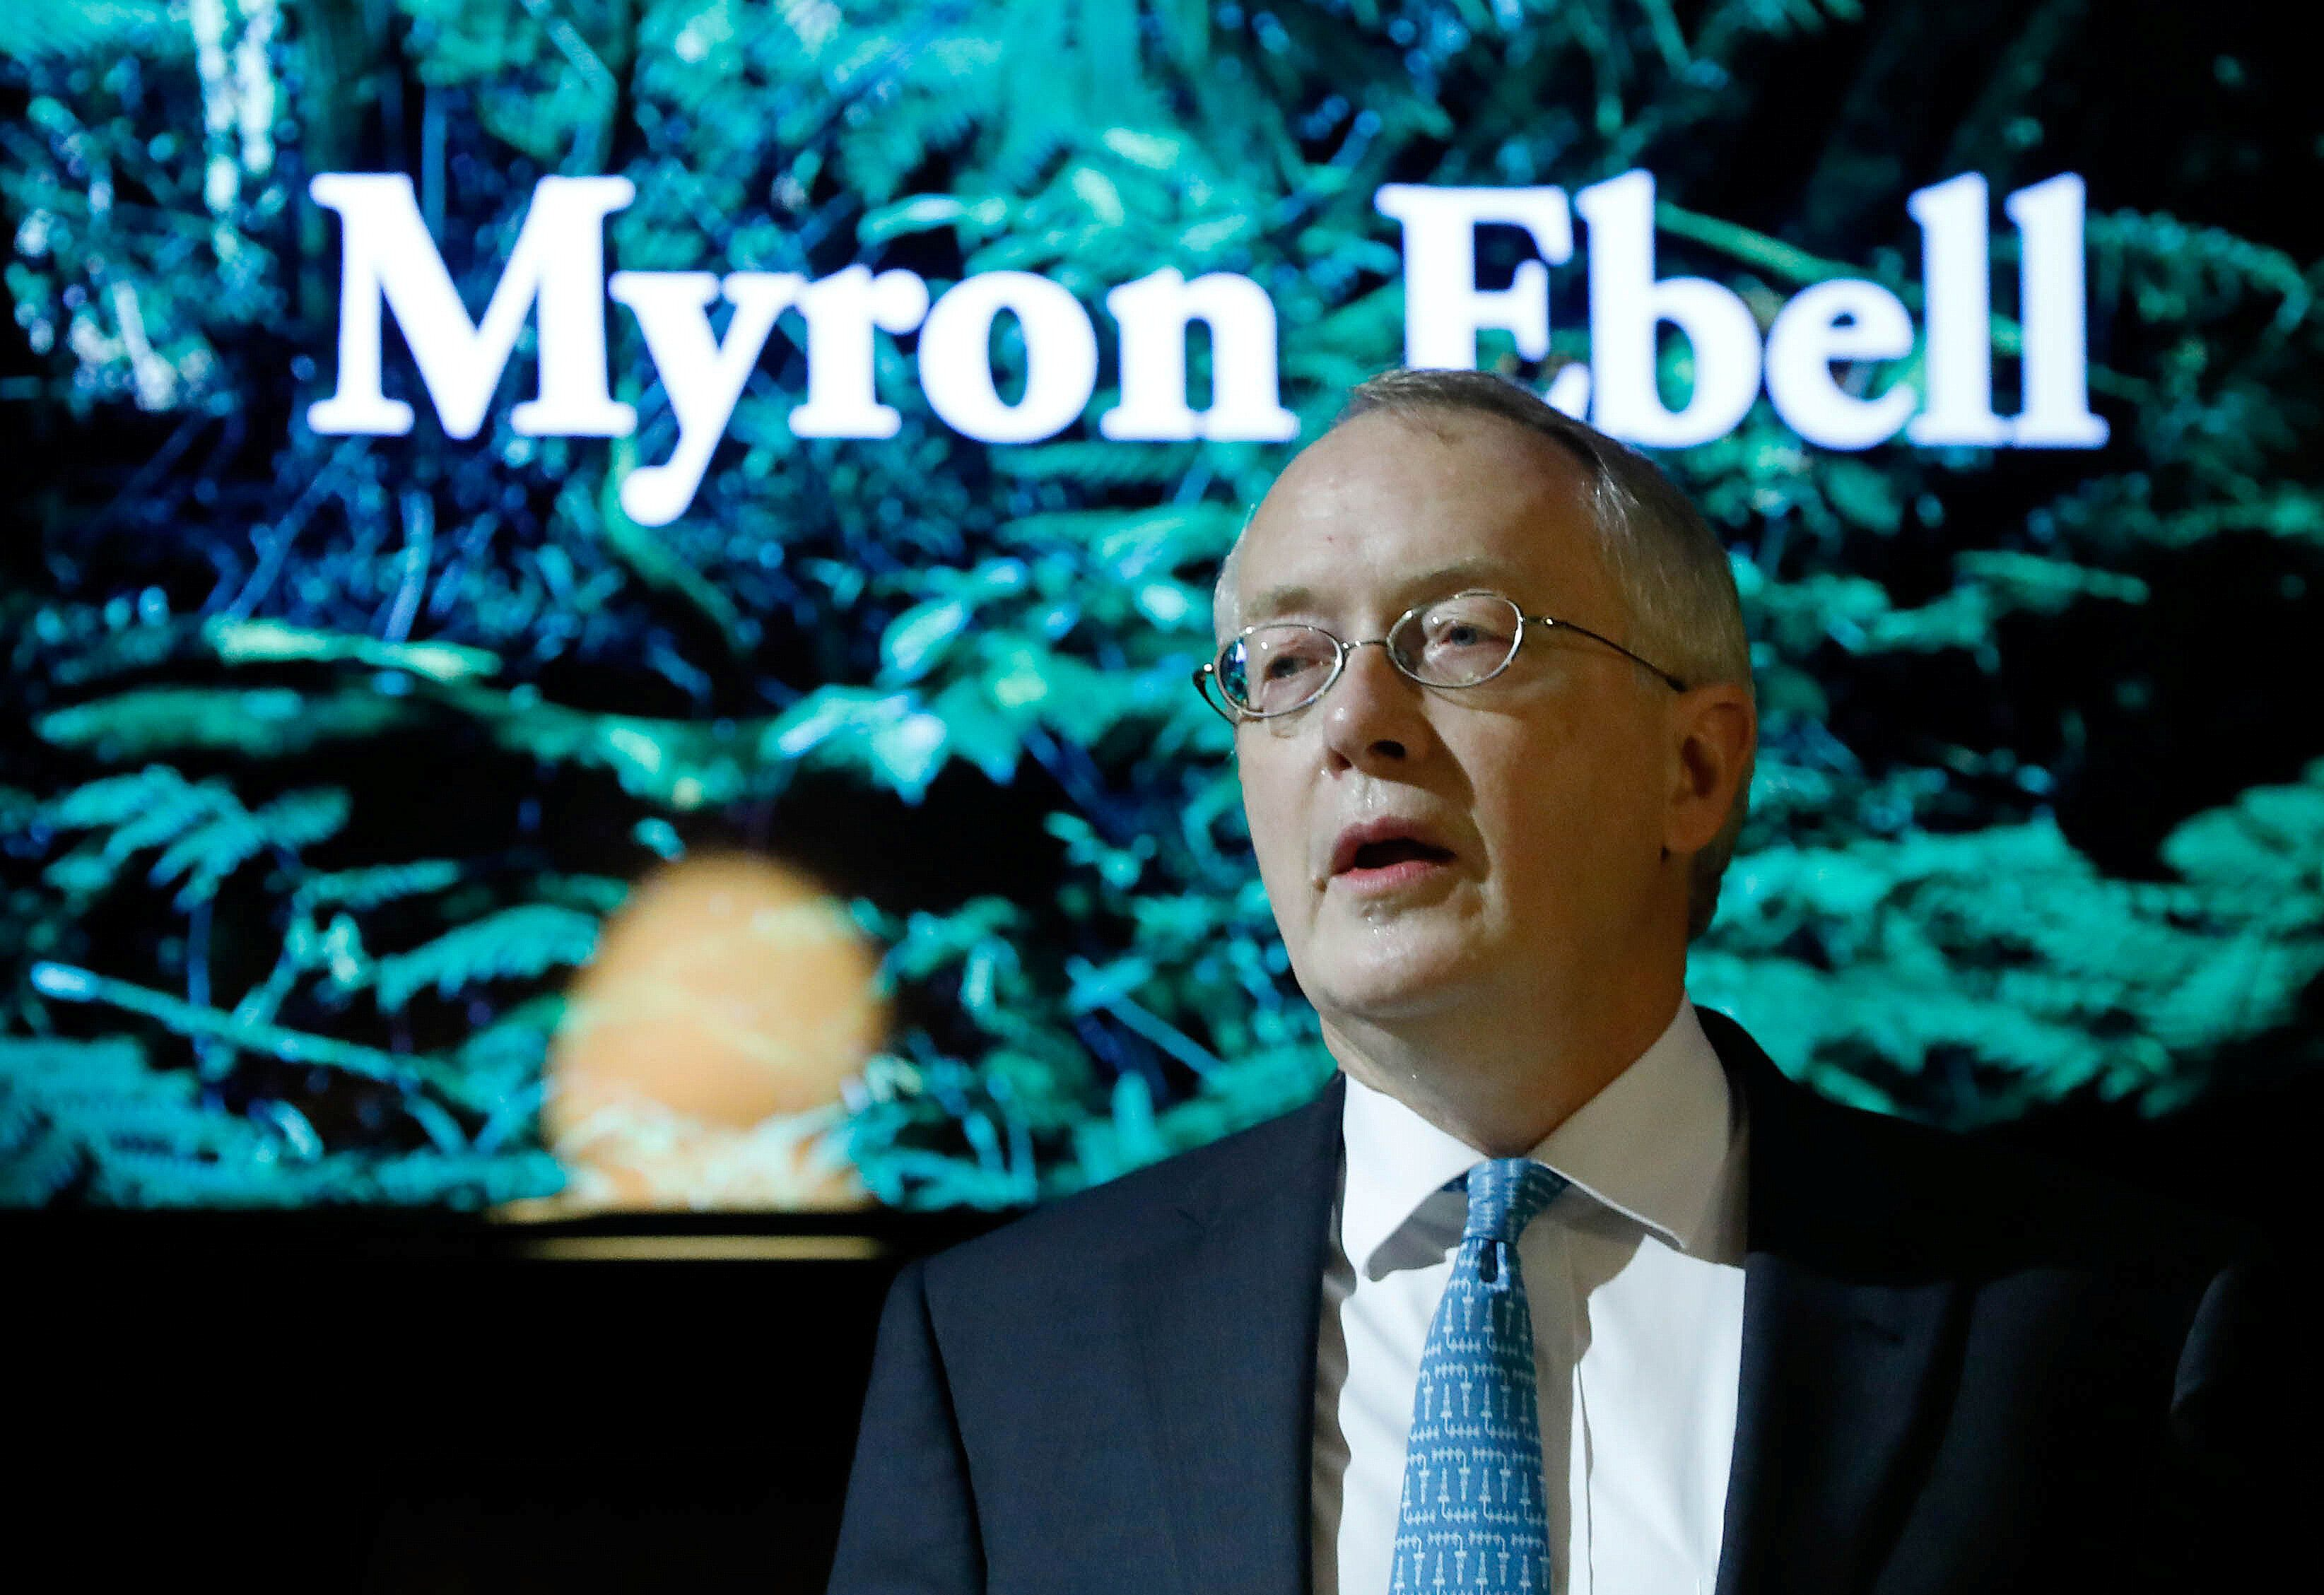 Myron Ebell, a climate change denier at the right-wing Competitive Enterprise Institute, led the Trump administration's trans